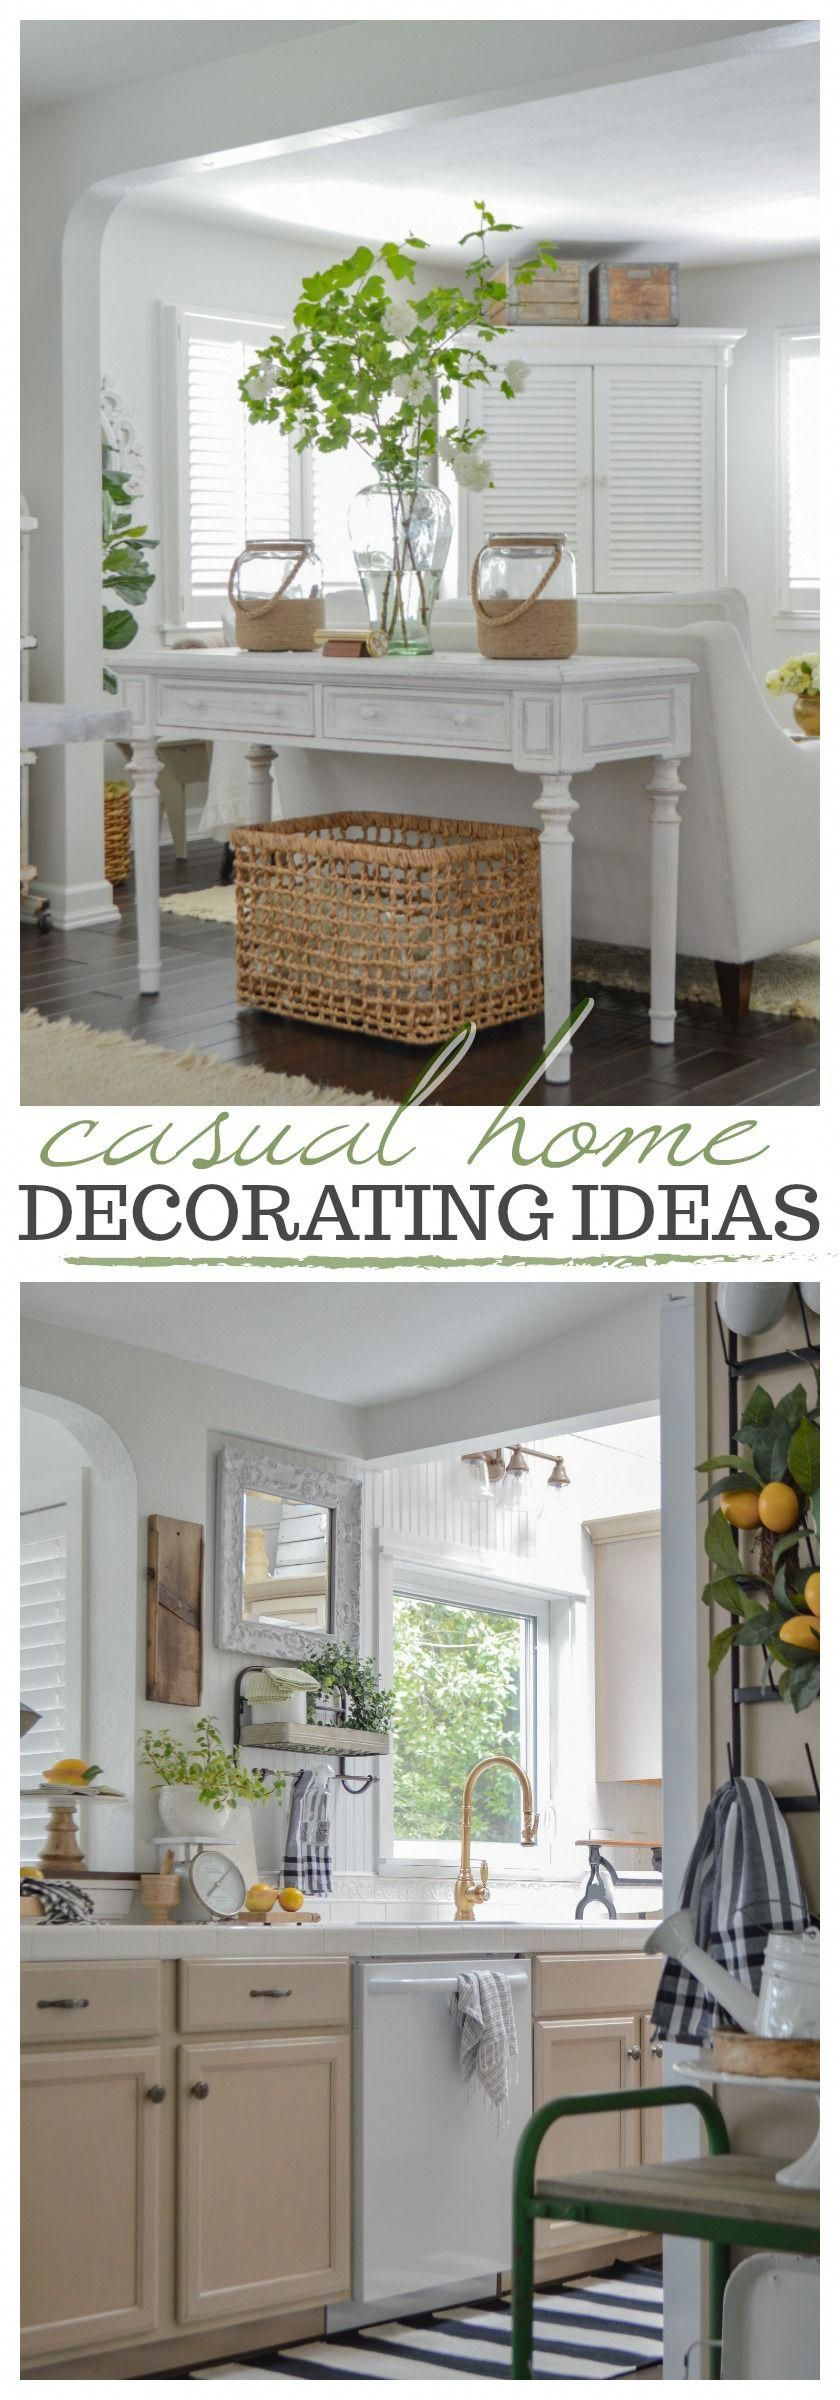 Keeping It Simple - casual, affordable, no fuss home decorating ideas with an easy going blend of traditional cottage farmhouse style, DIY and vintage finds for Summer and beyond. #decoratingideas #homedecoratingideas #neutralhome #hometour #cottagestyle #farmhousestyle #simpledecor #diyhome #countrykitchenideas